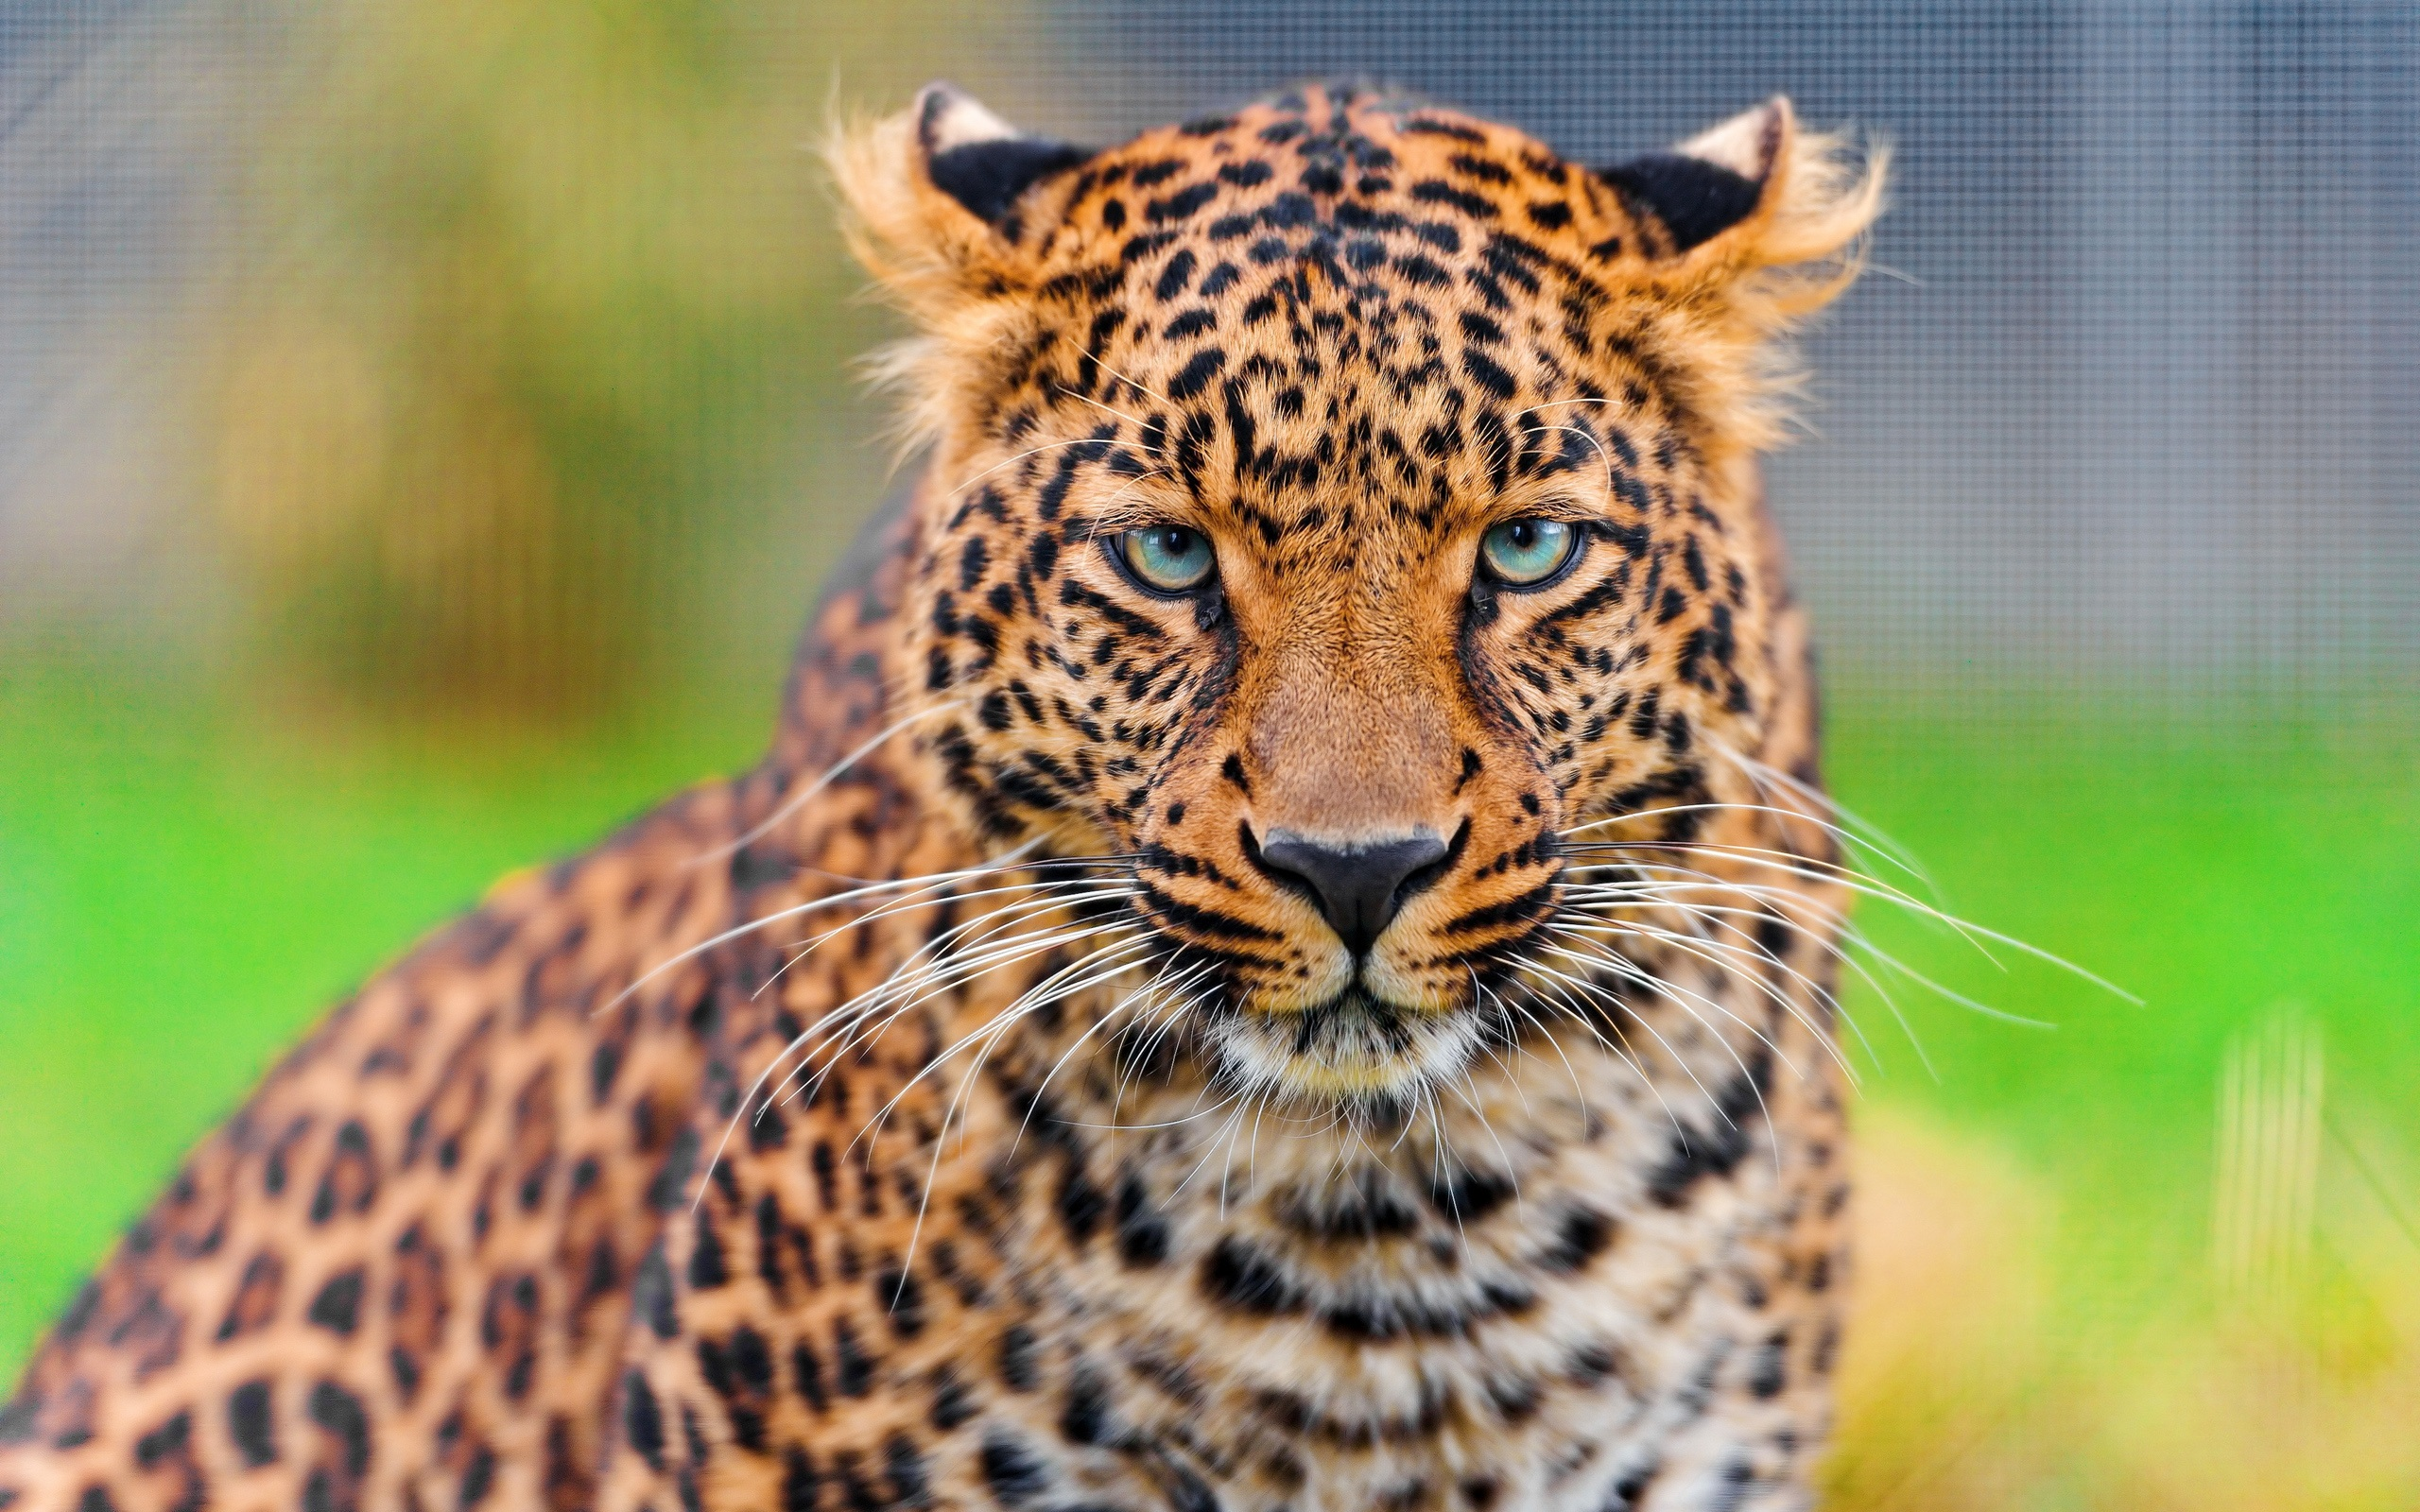 Leopard face HD close-up wallpaper 2560x1600.